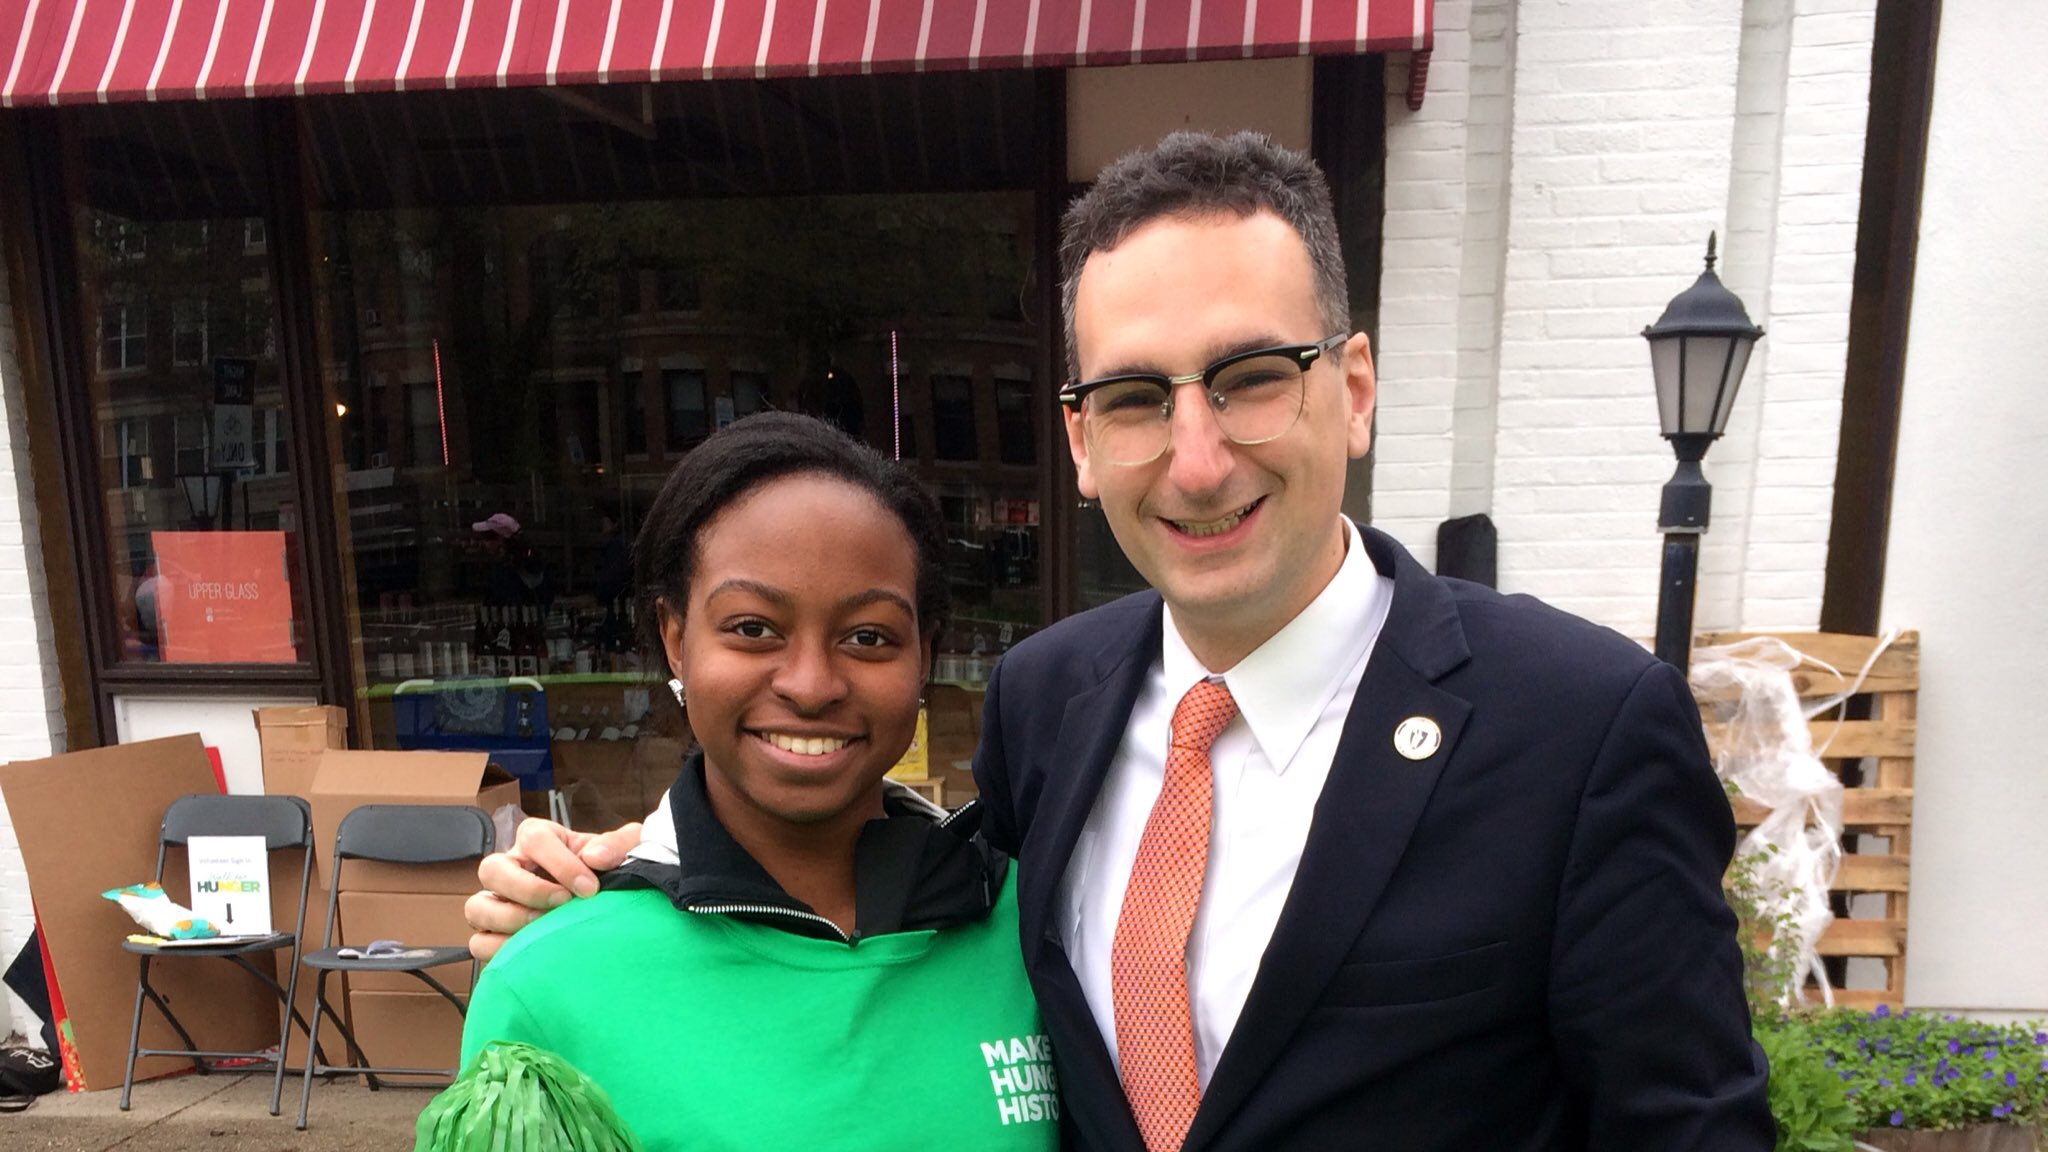 Tommy Vitolo and volunteer supervisor at Walk for Hunger